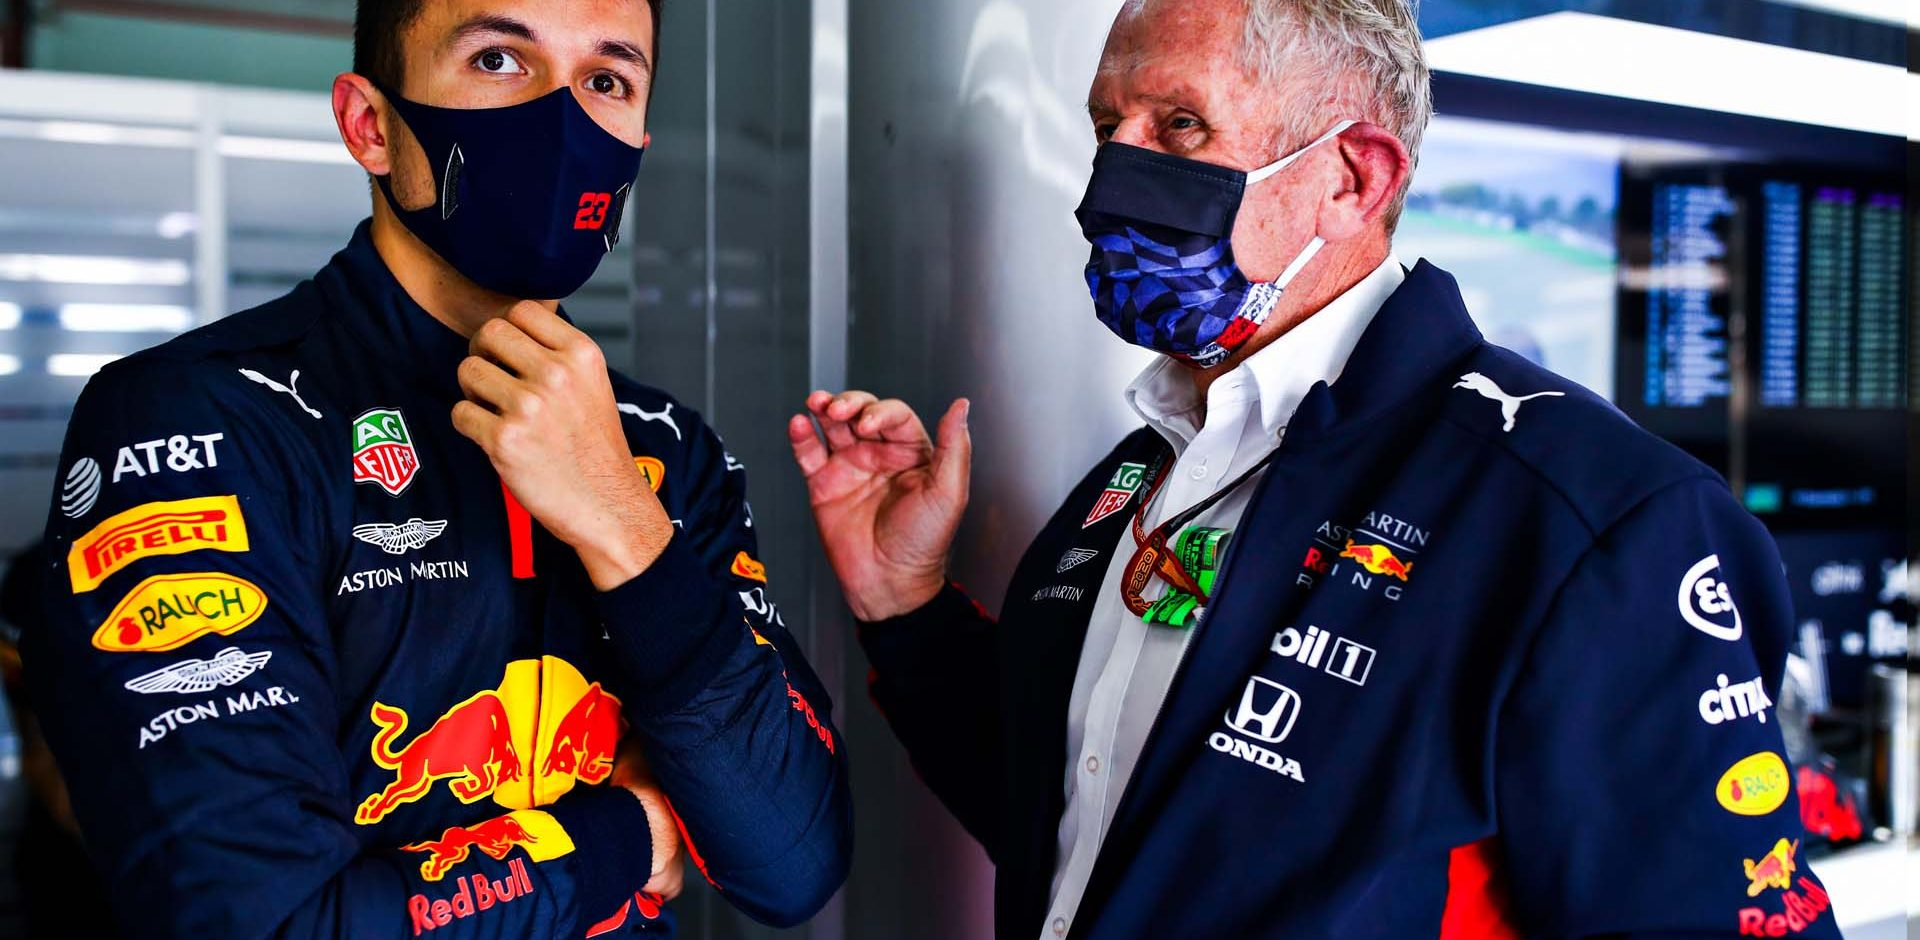 IMOLA, ITALY - OCTOBER 31: Alexander Albon of Thailand and Red Bull Racing talks with Red Bull Racing Team Consultant Dr Helmut Marko in the garage during practice ahead of the F1 Grand Prix of Emilia Romagna at Autodromo Enzo e Dino Ferrari on October 31, 2020 in Imola, Italy. (Photo by Mark Thompson/Getty Images)